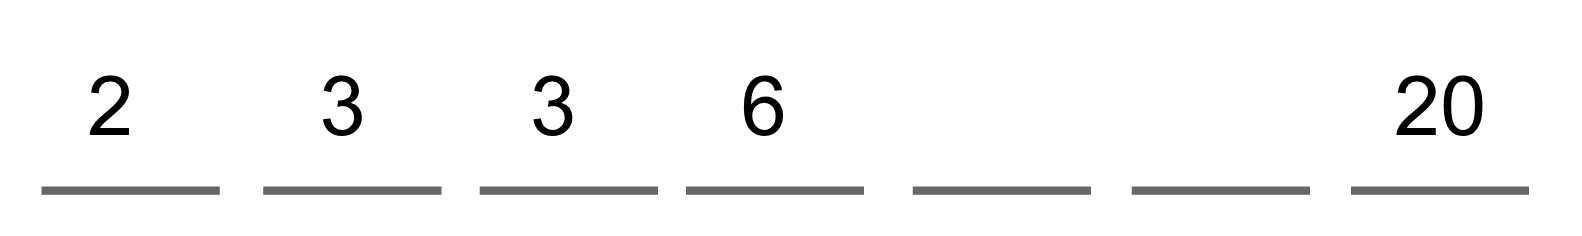 body_numbers_2_ex.png